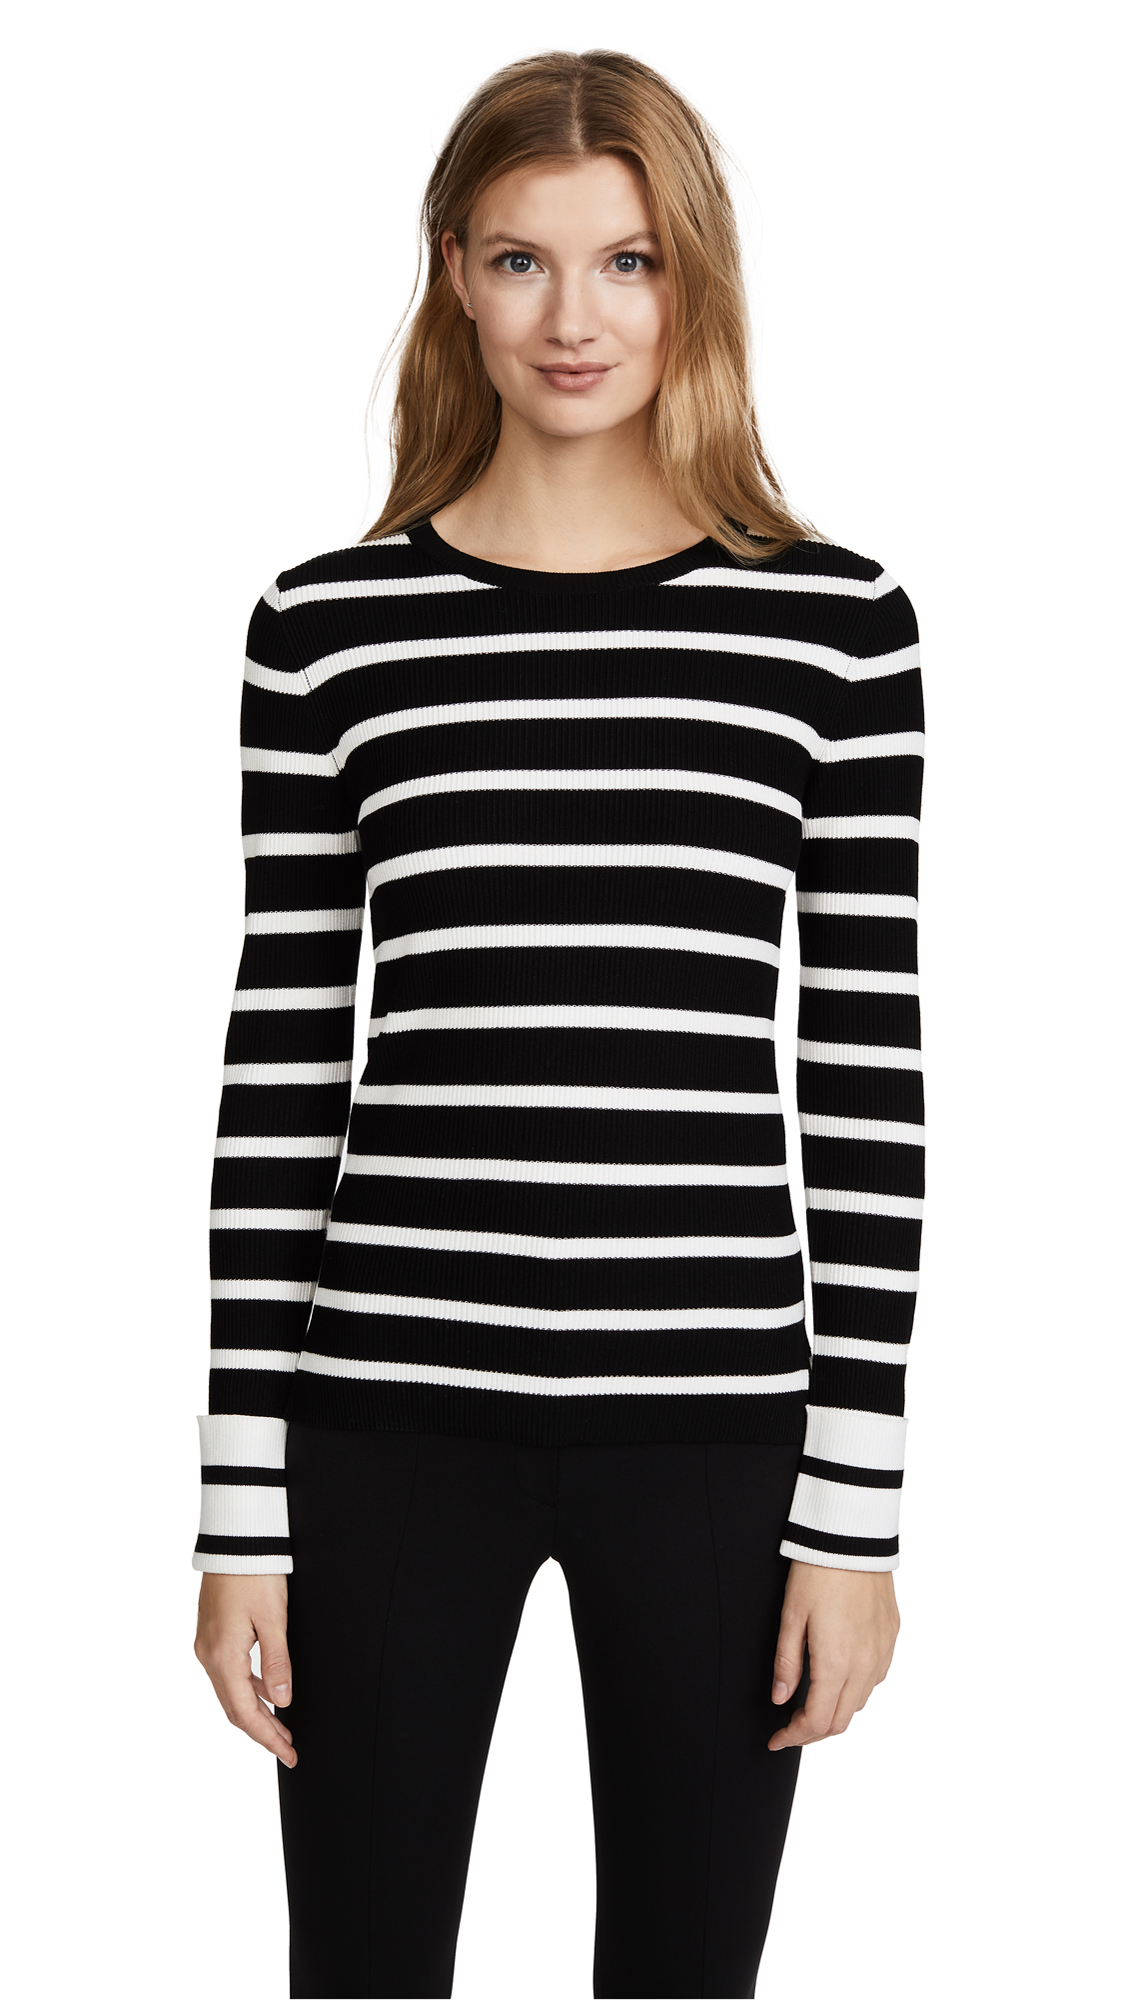 Theory Striped Crew Sweater - Black/Eggshell